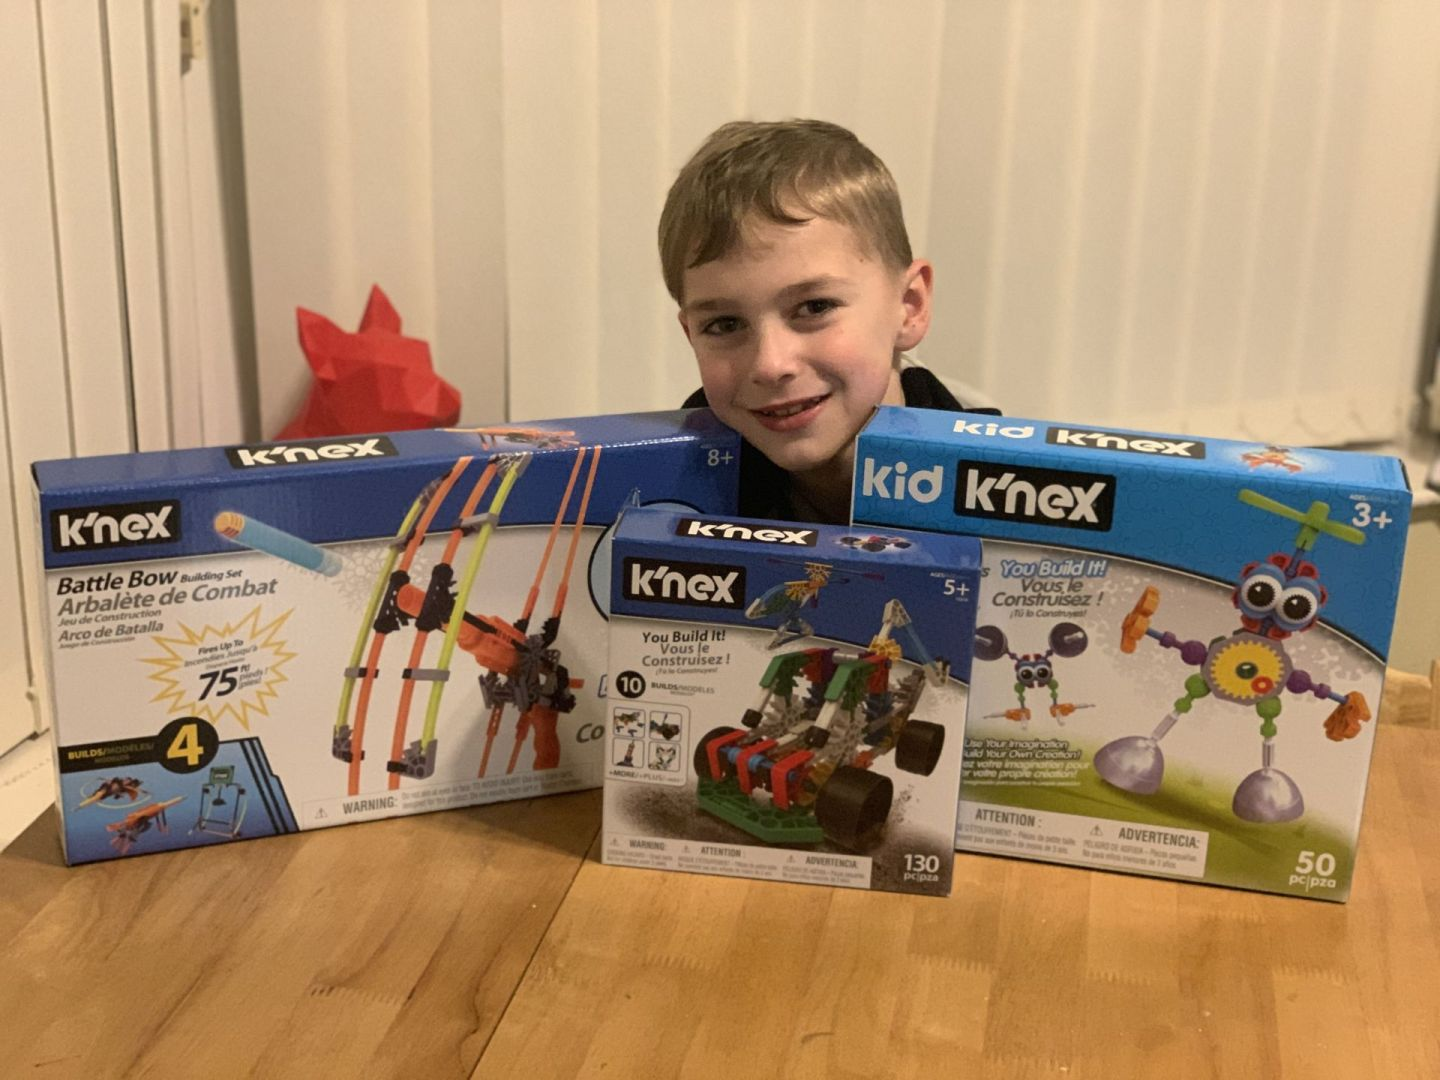 Encourage Creativity With K'Nex Building Sets For All Ages :: AD